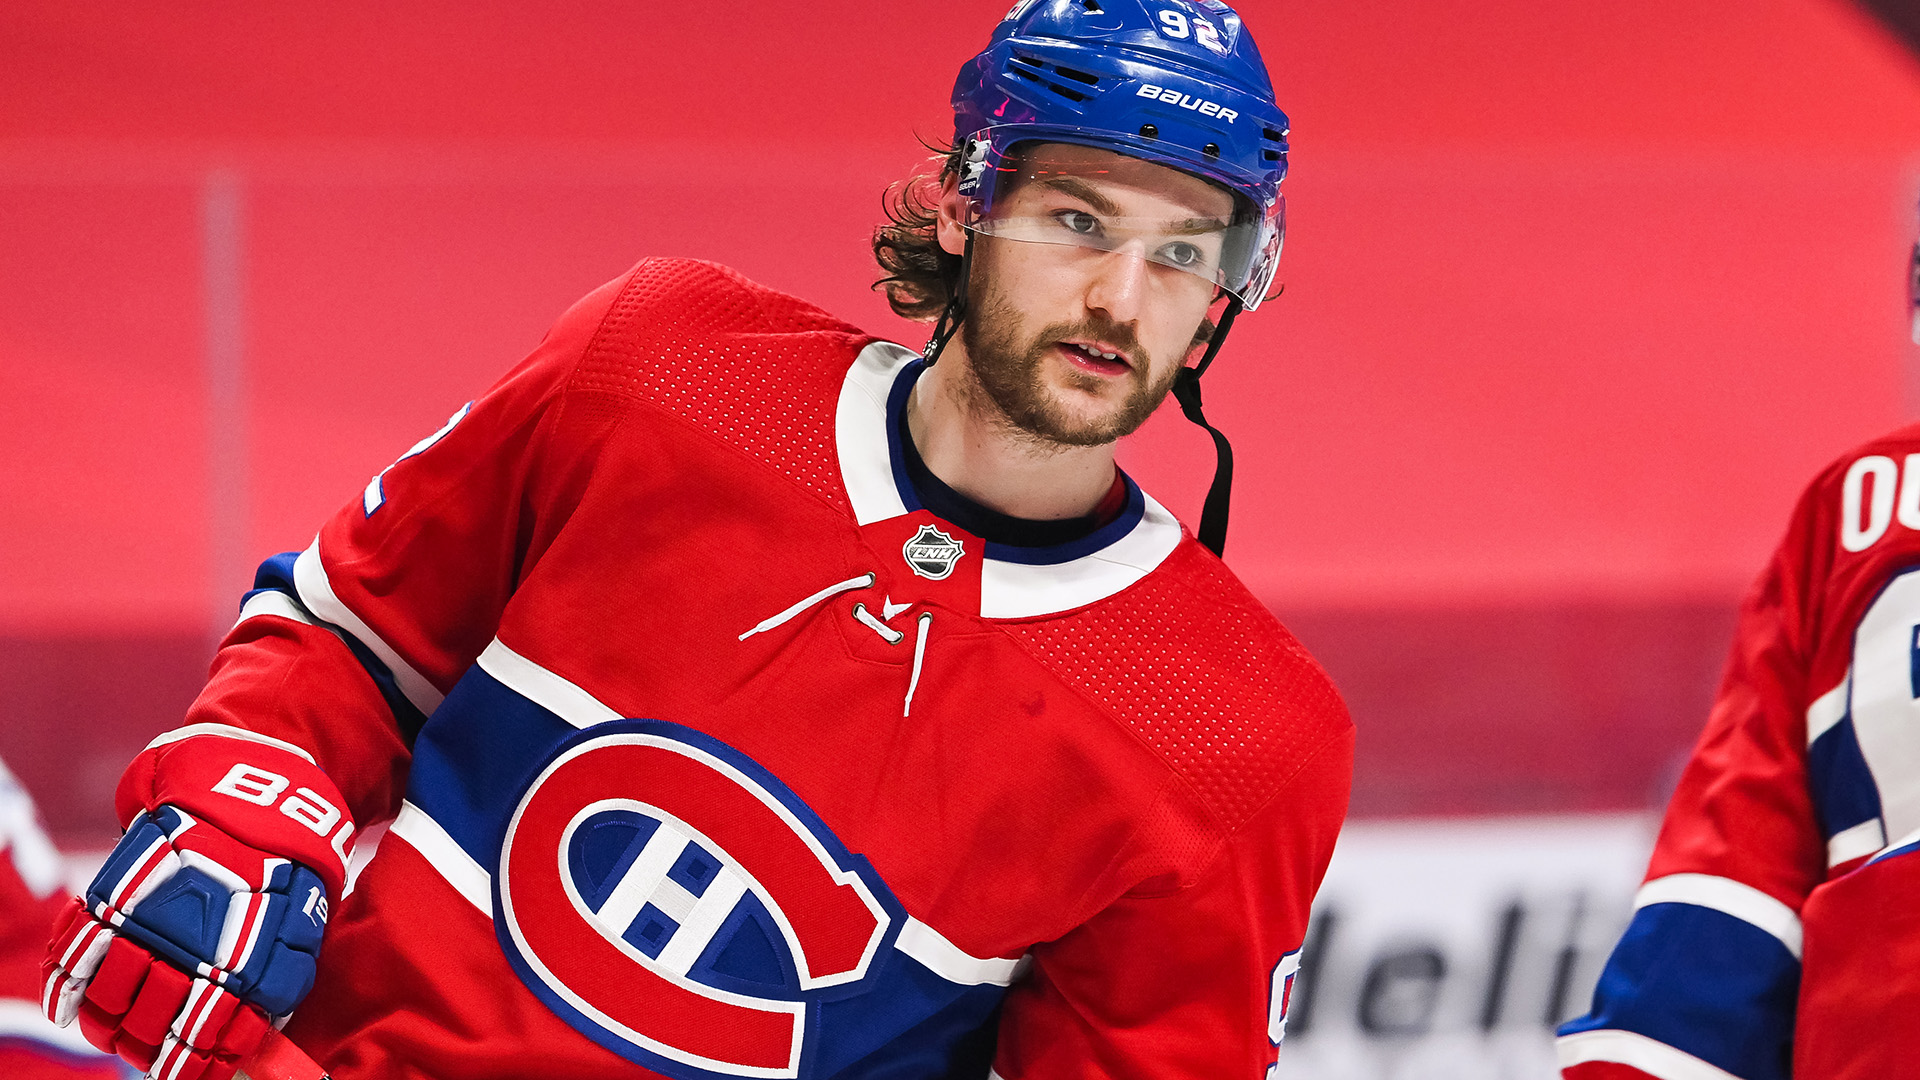 MONTREAL, QC - APRIL 14: Look on Montreal Canadiens left wing Jonathan Drouin (92) at warm-up before the Calgary Flames versus the Montreal Canadiens game on April 14, 2021, at Bell Centre in Montreal, QC (Photo by David Kirouac/Icon Sportswire via Getty Images)